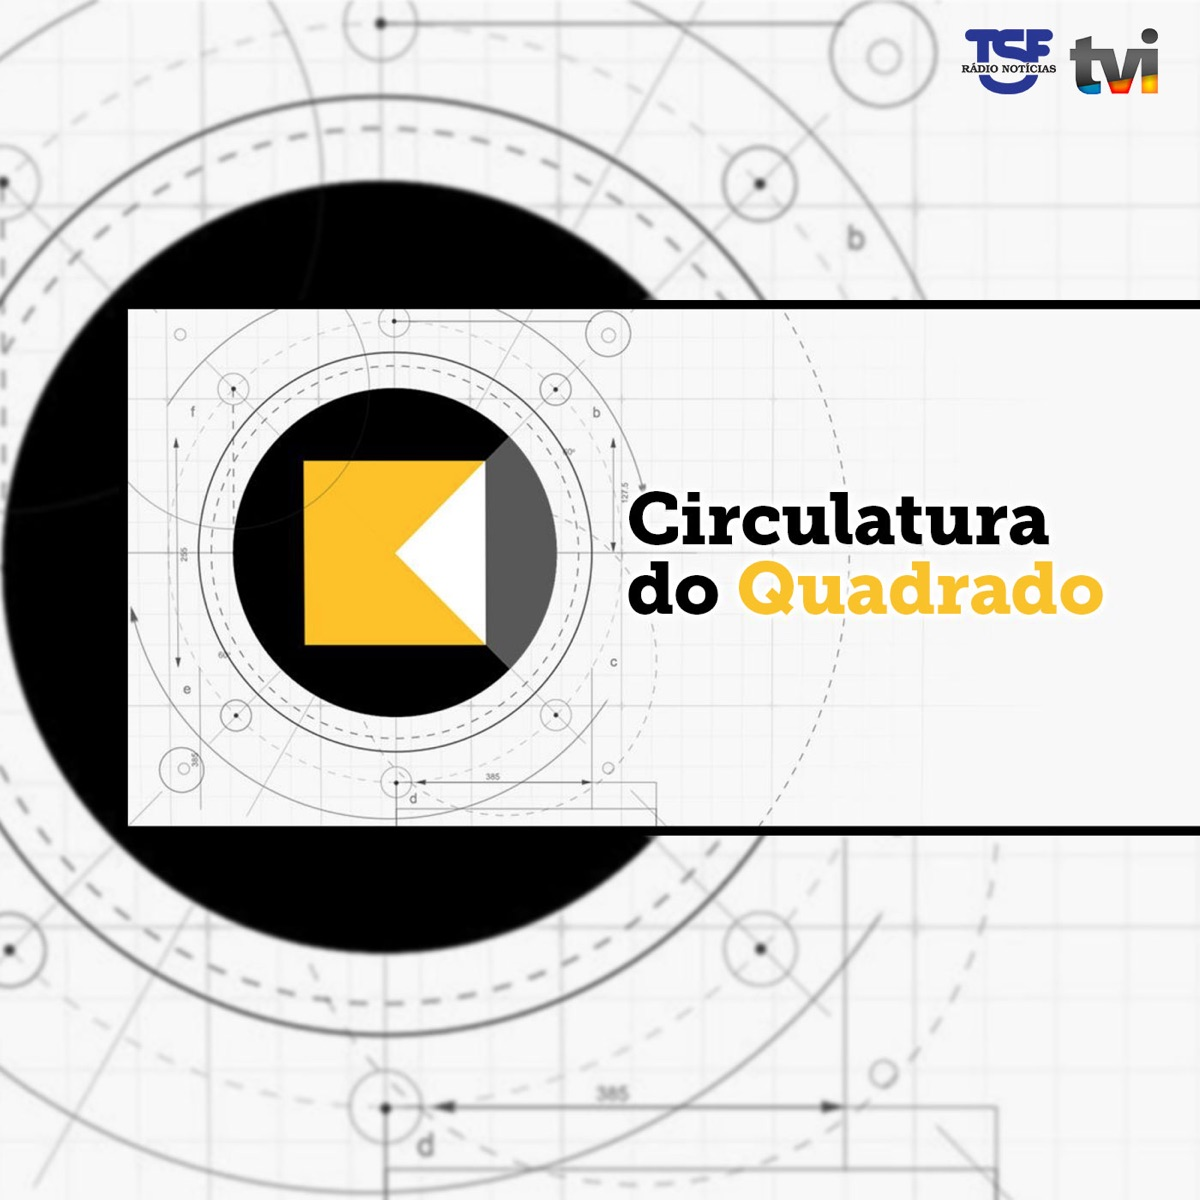 Circulatura do Quadrado - 01 de Abril 2020